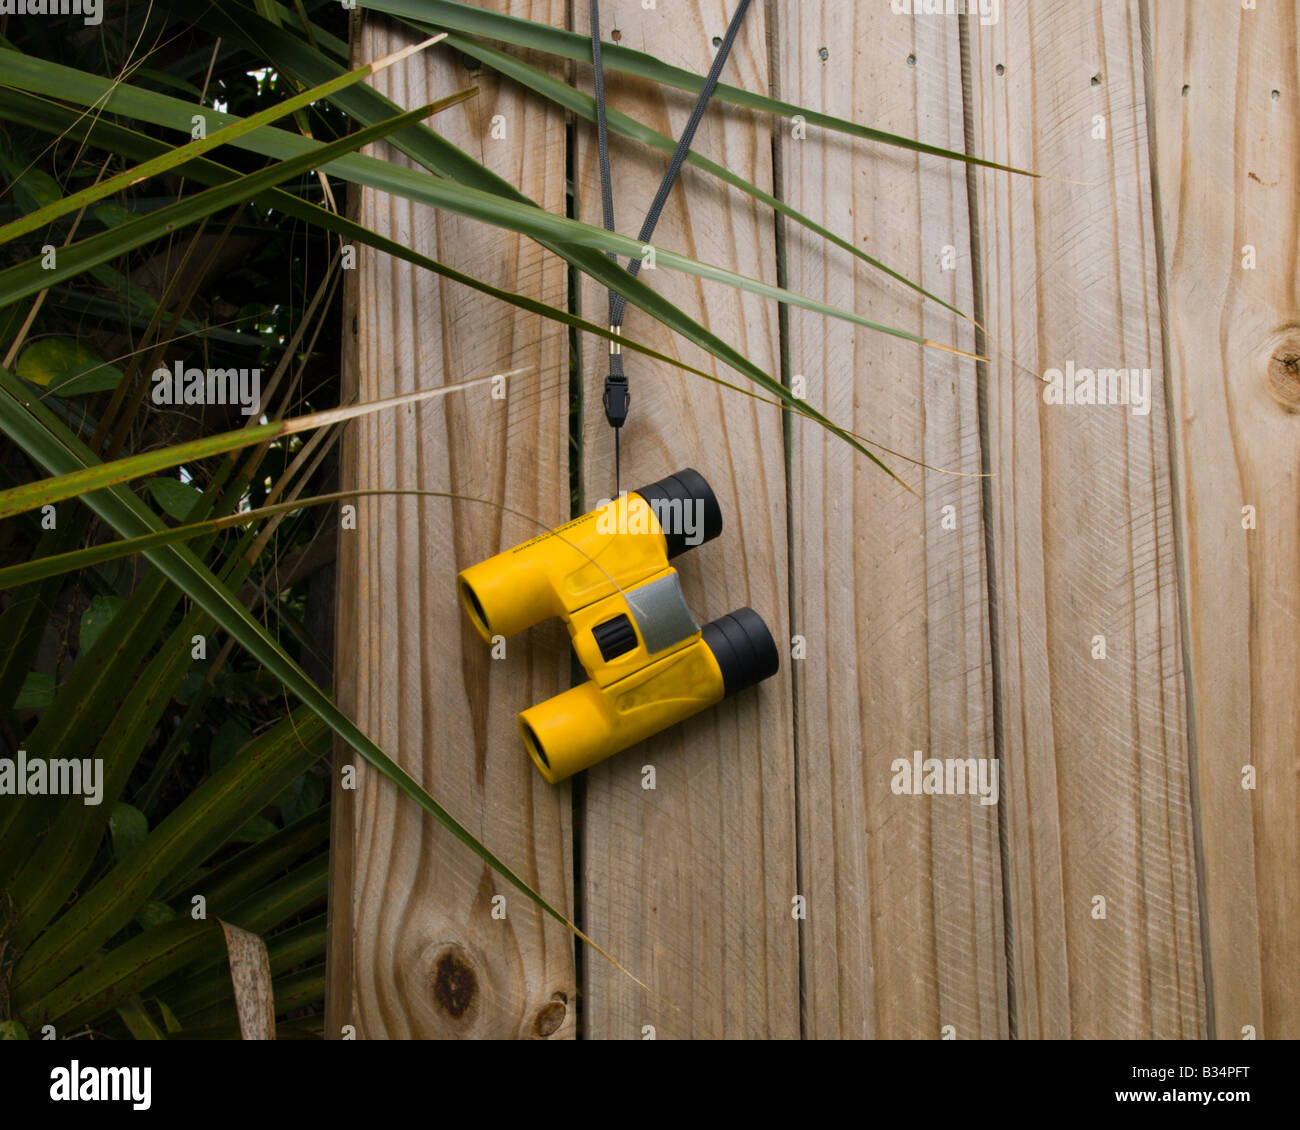 BINOCULARS ARE KEPT READY FOR INSTANT USE IN SPYING ON THE NEIGHBORS - Stock Image